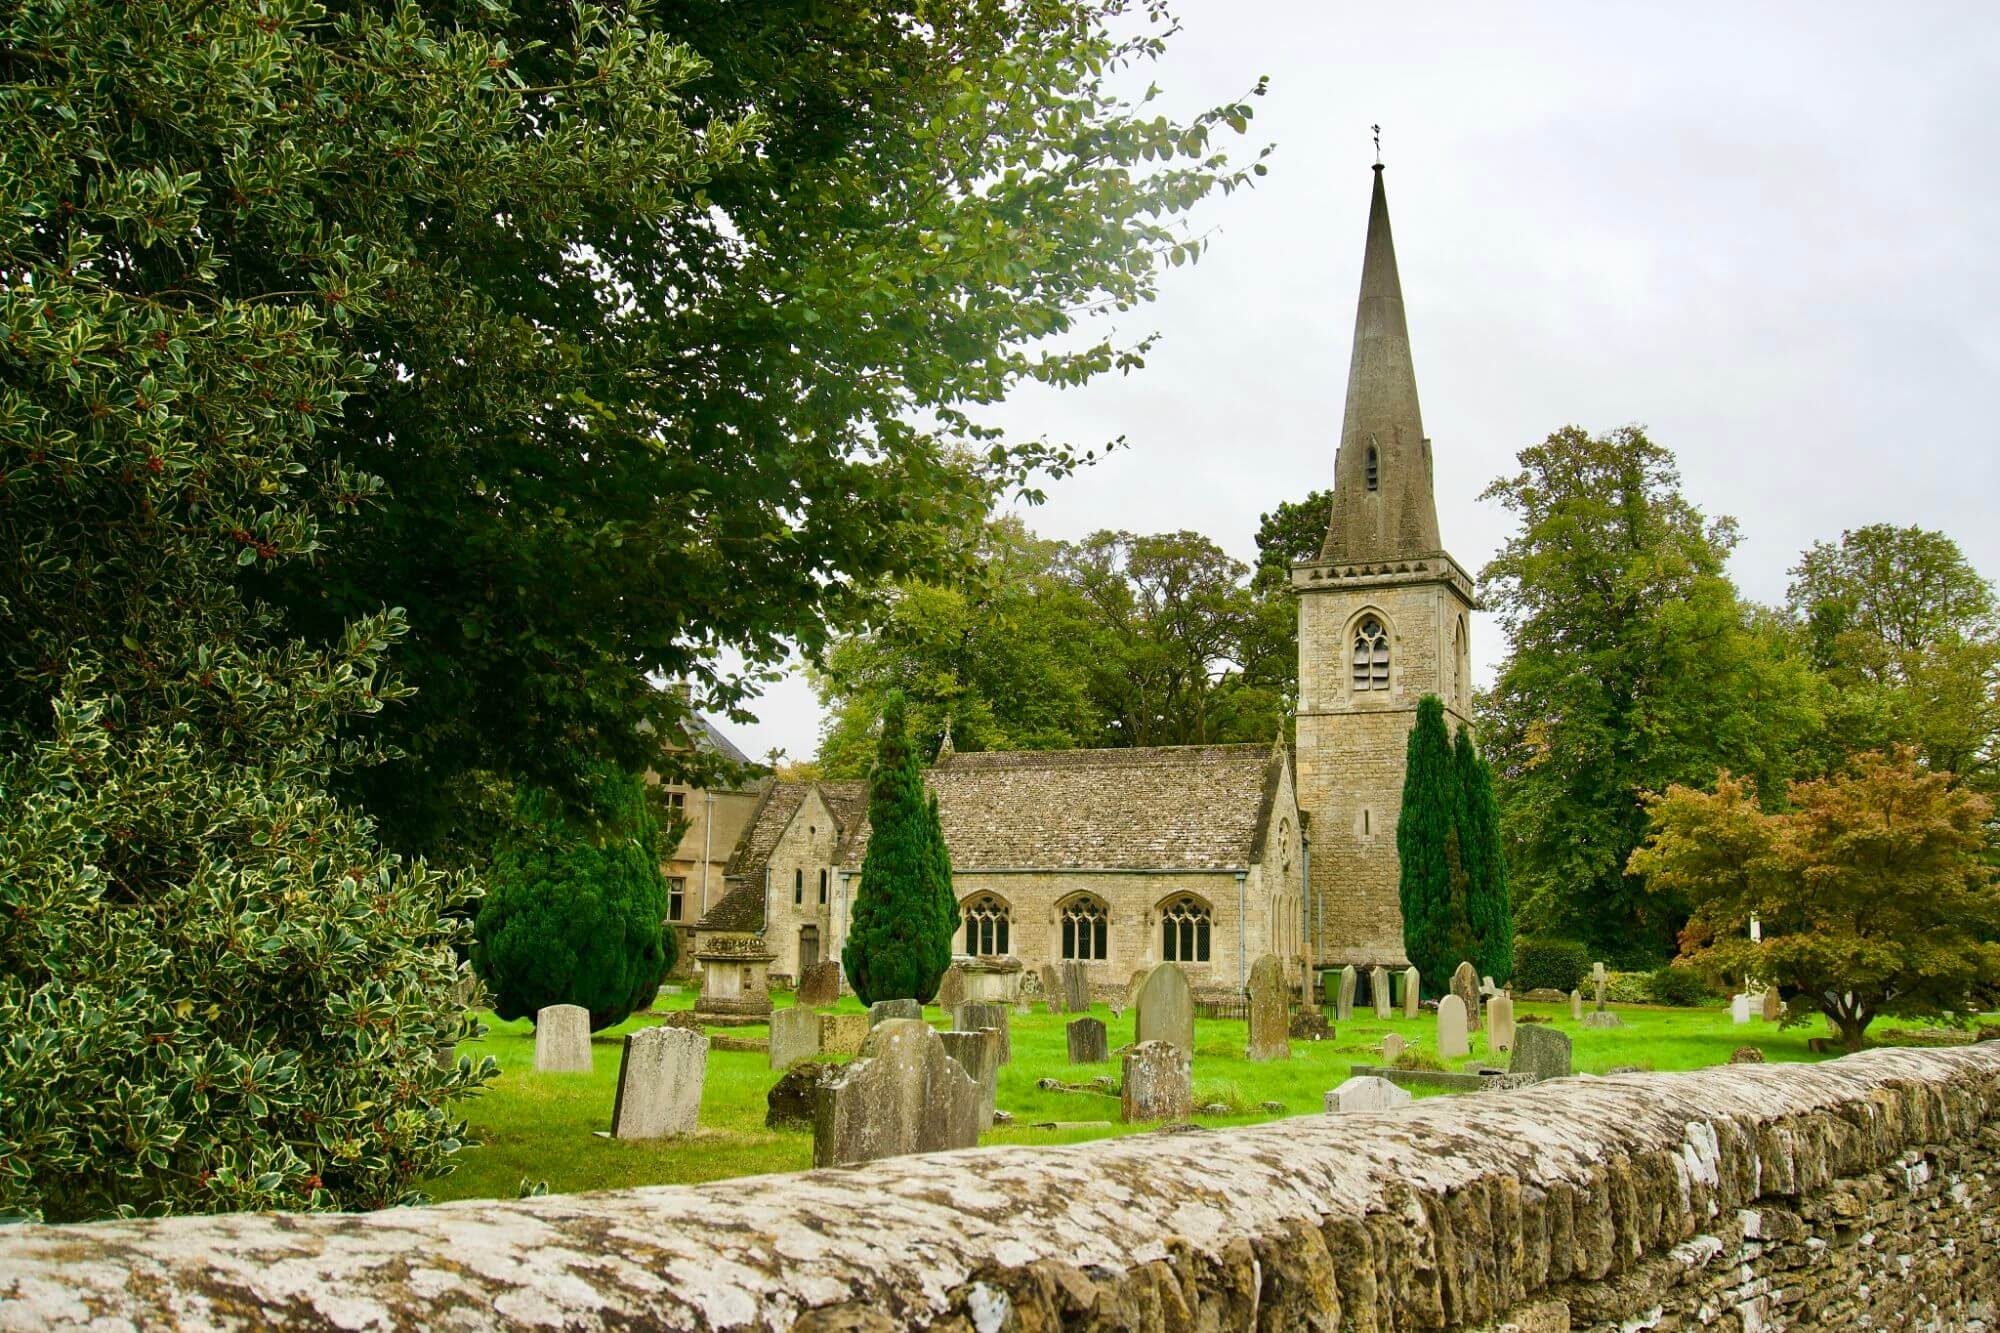 Church in Upper Slaughter in The Cotswolds